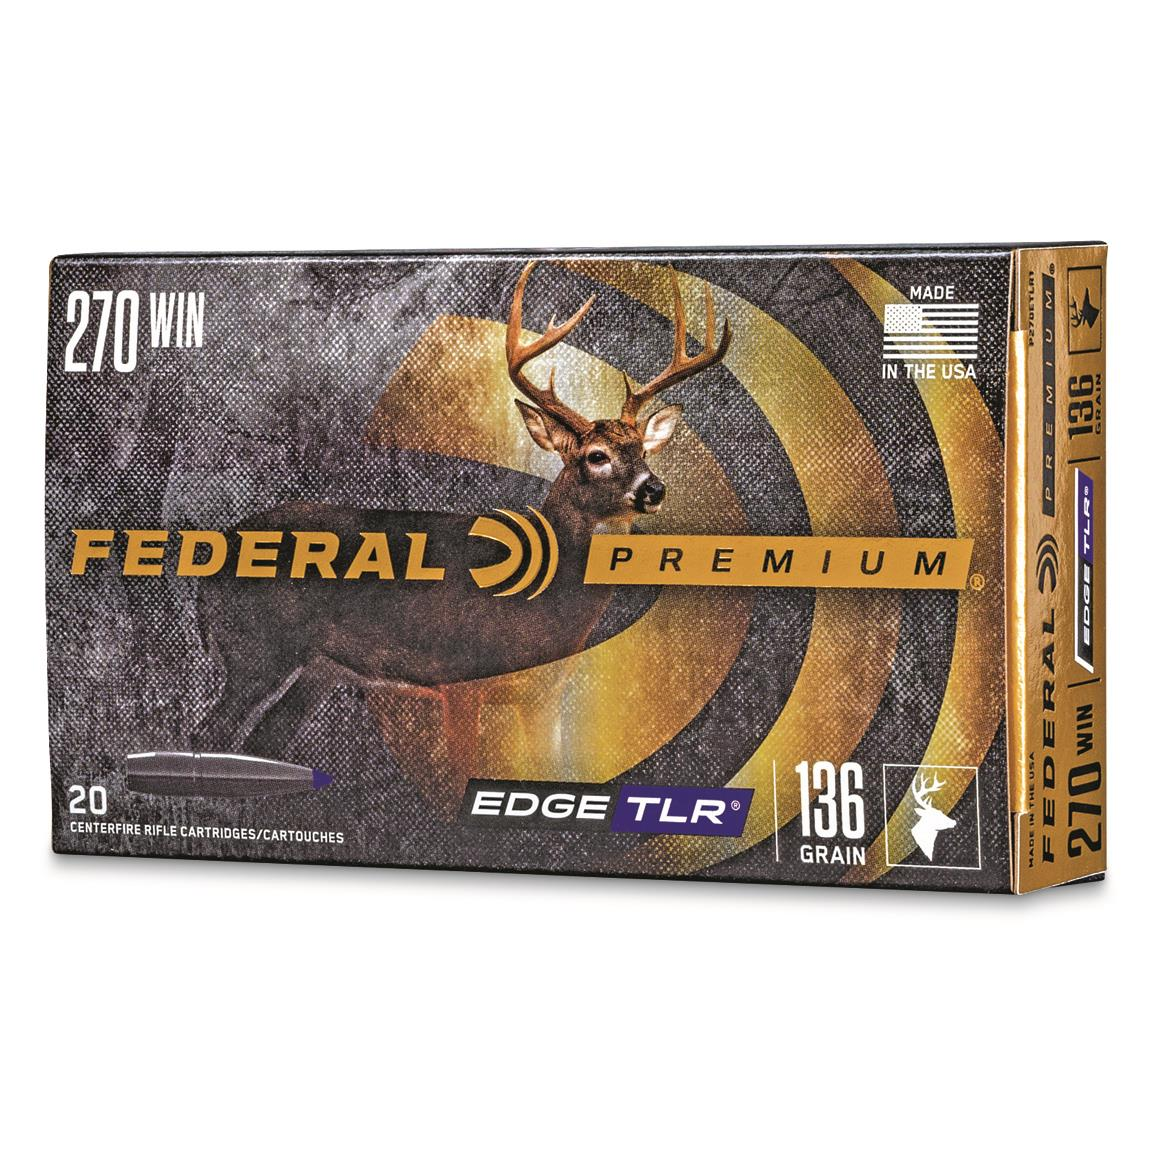 Federal Premium Edge TLR, .270 Winchester, Edge TLR, 136 Grain, 20 Rounds